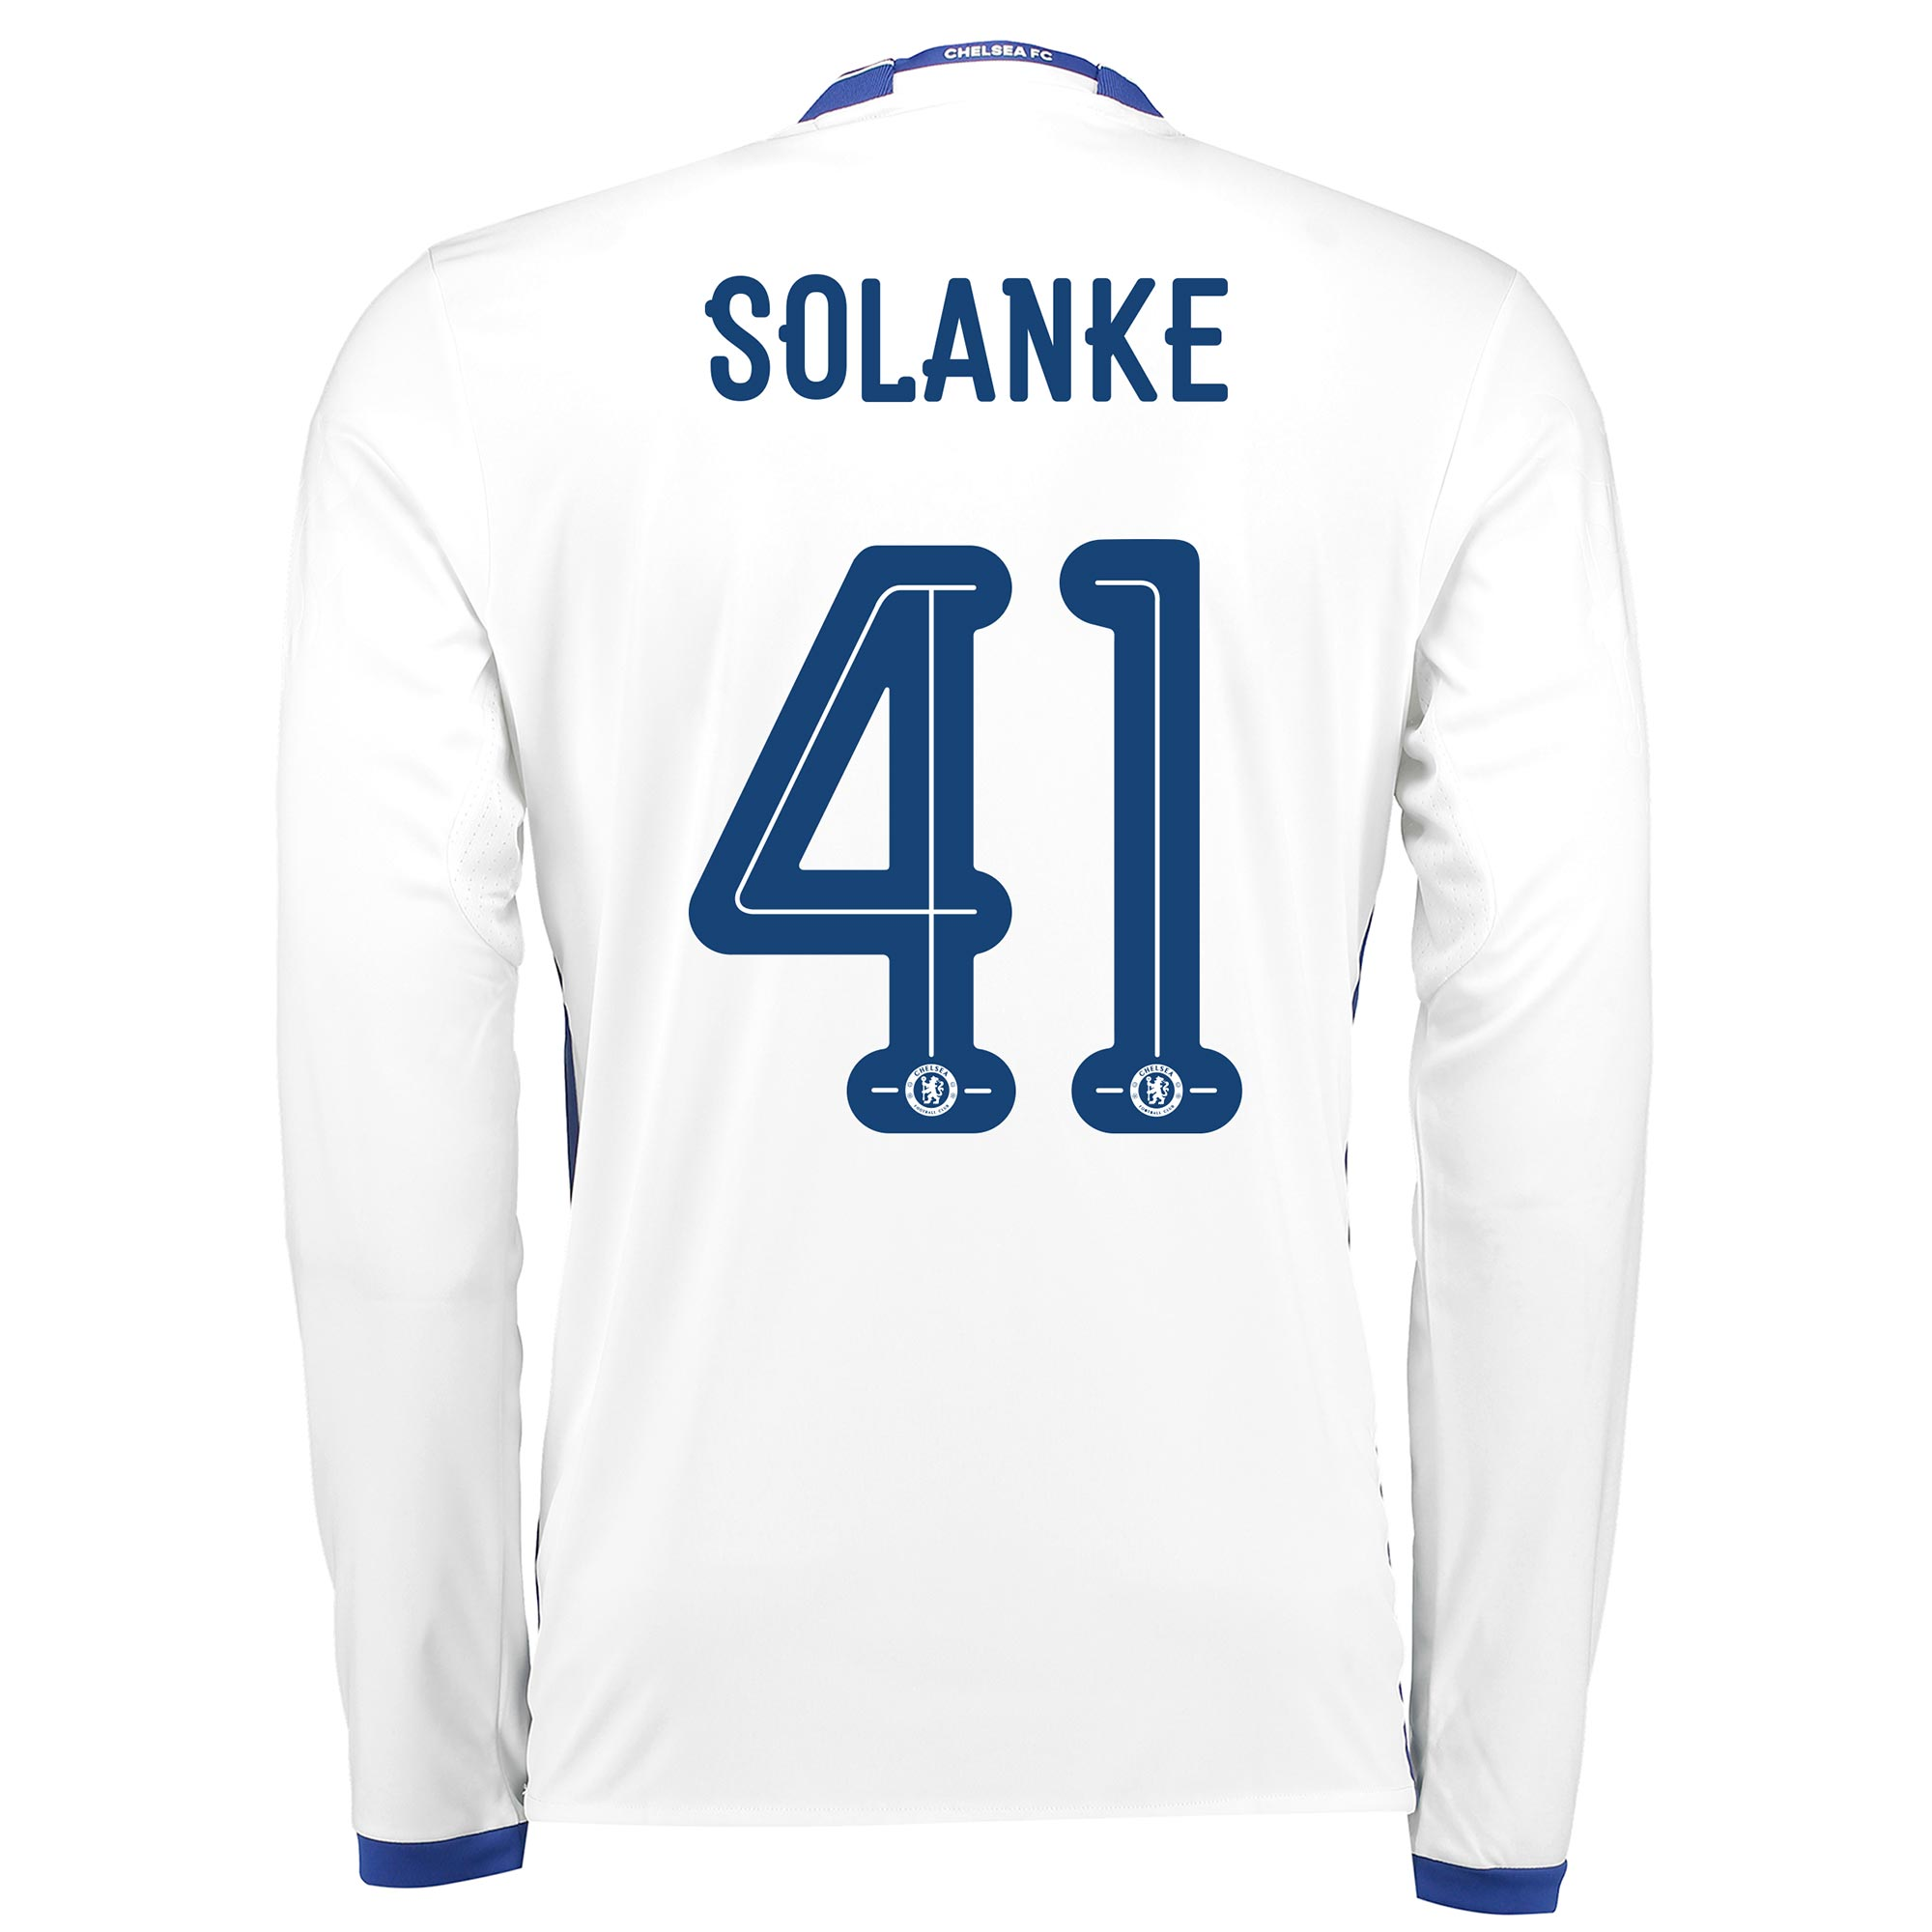 Chelsea Linear Third Shirt 16-17 - Long Sleeve with Solanke 41 printin